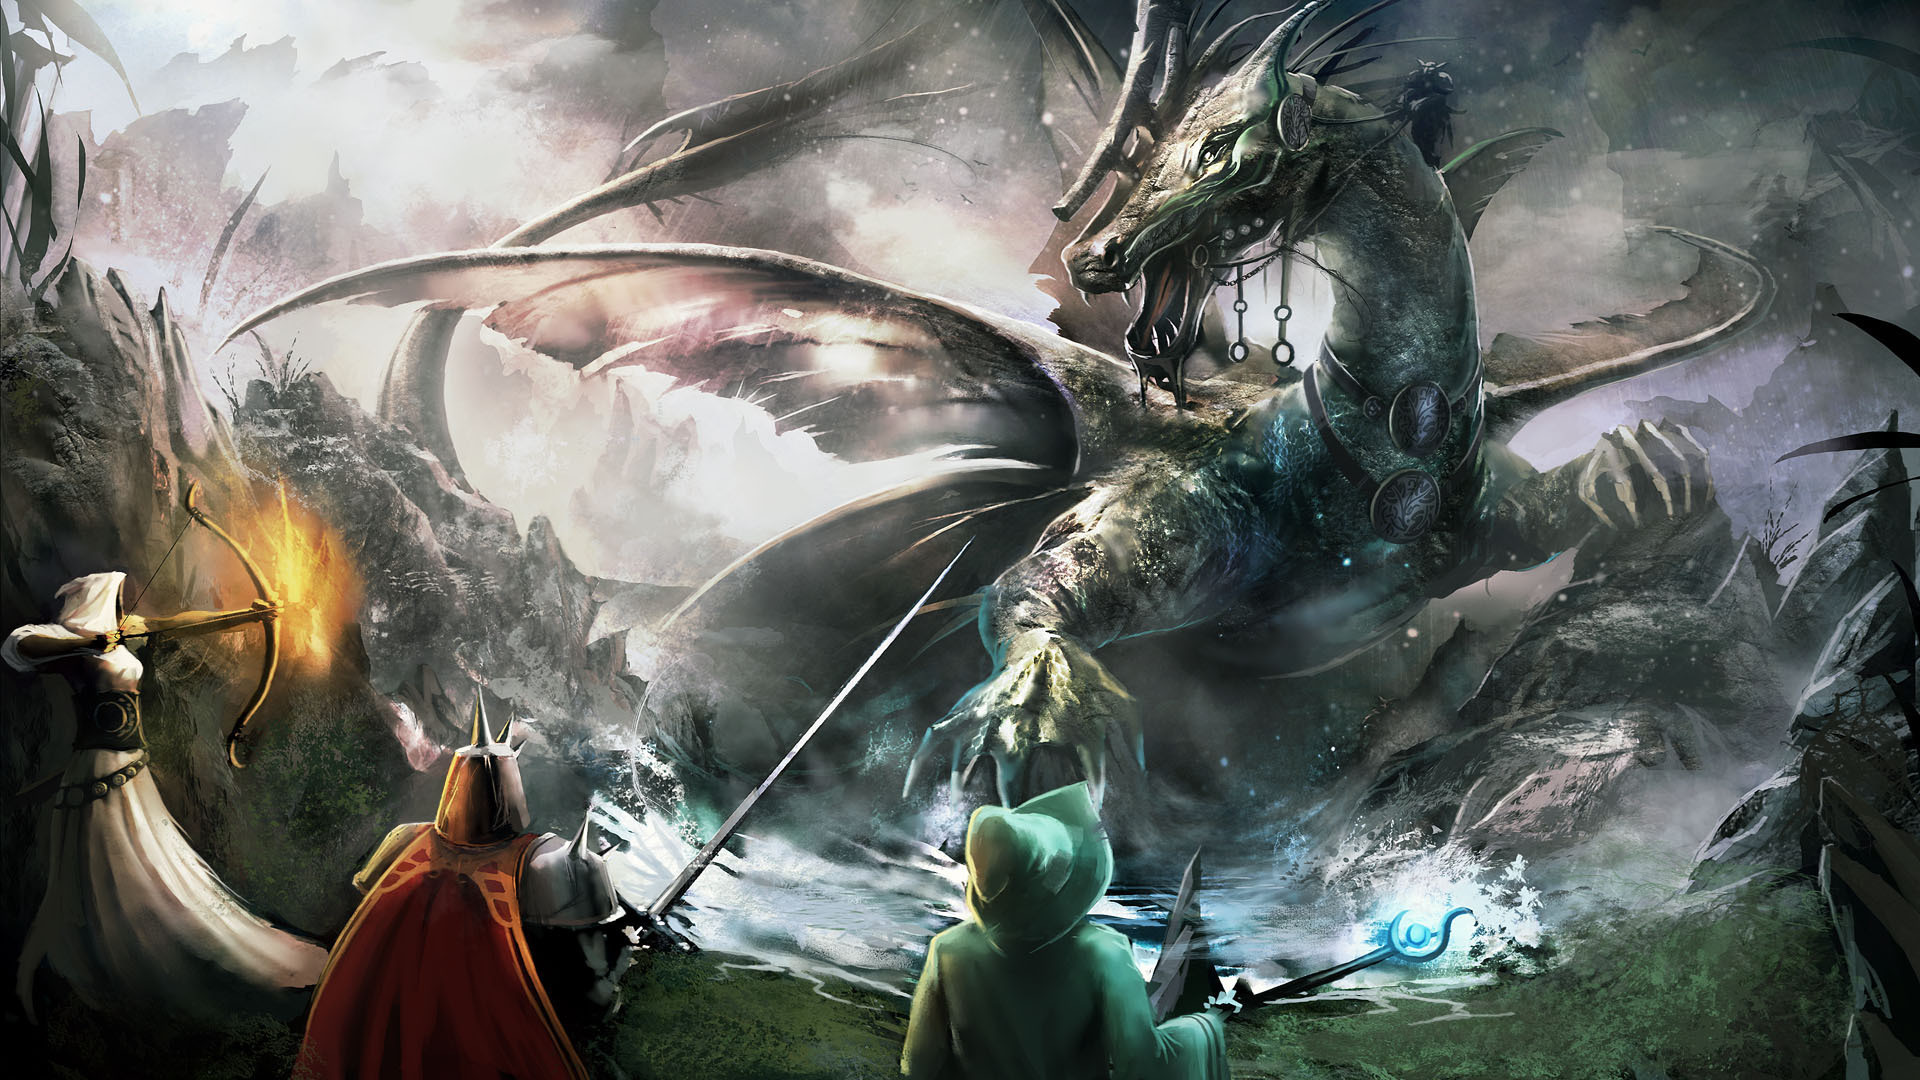 Dual Screen Hd Fantasy Wallpapers Get Your Fix Here: Dragonlance Wallpapers (48+ Pictures